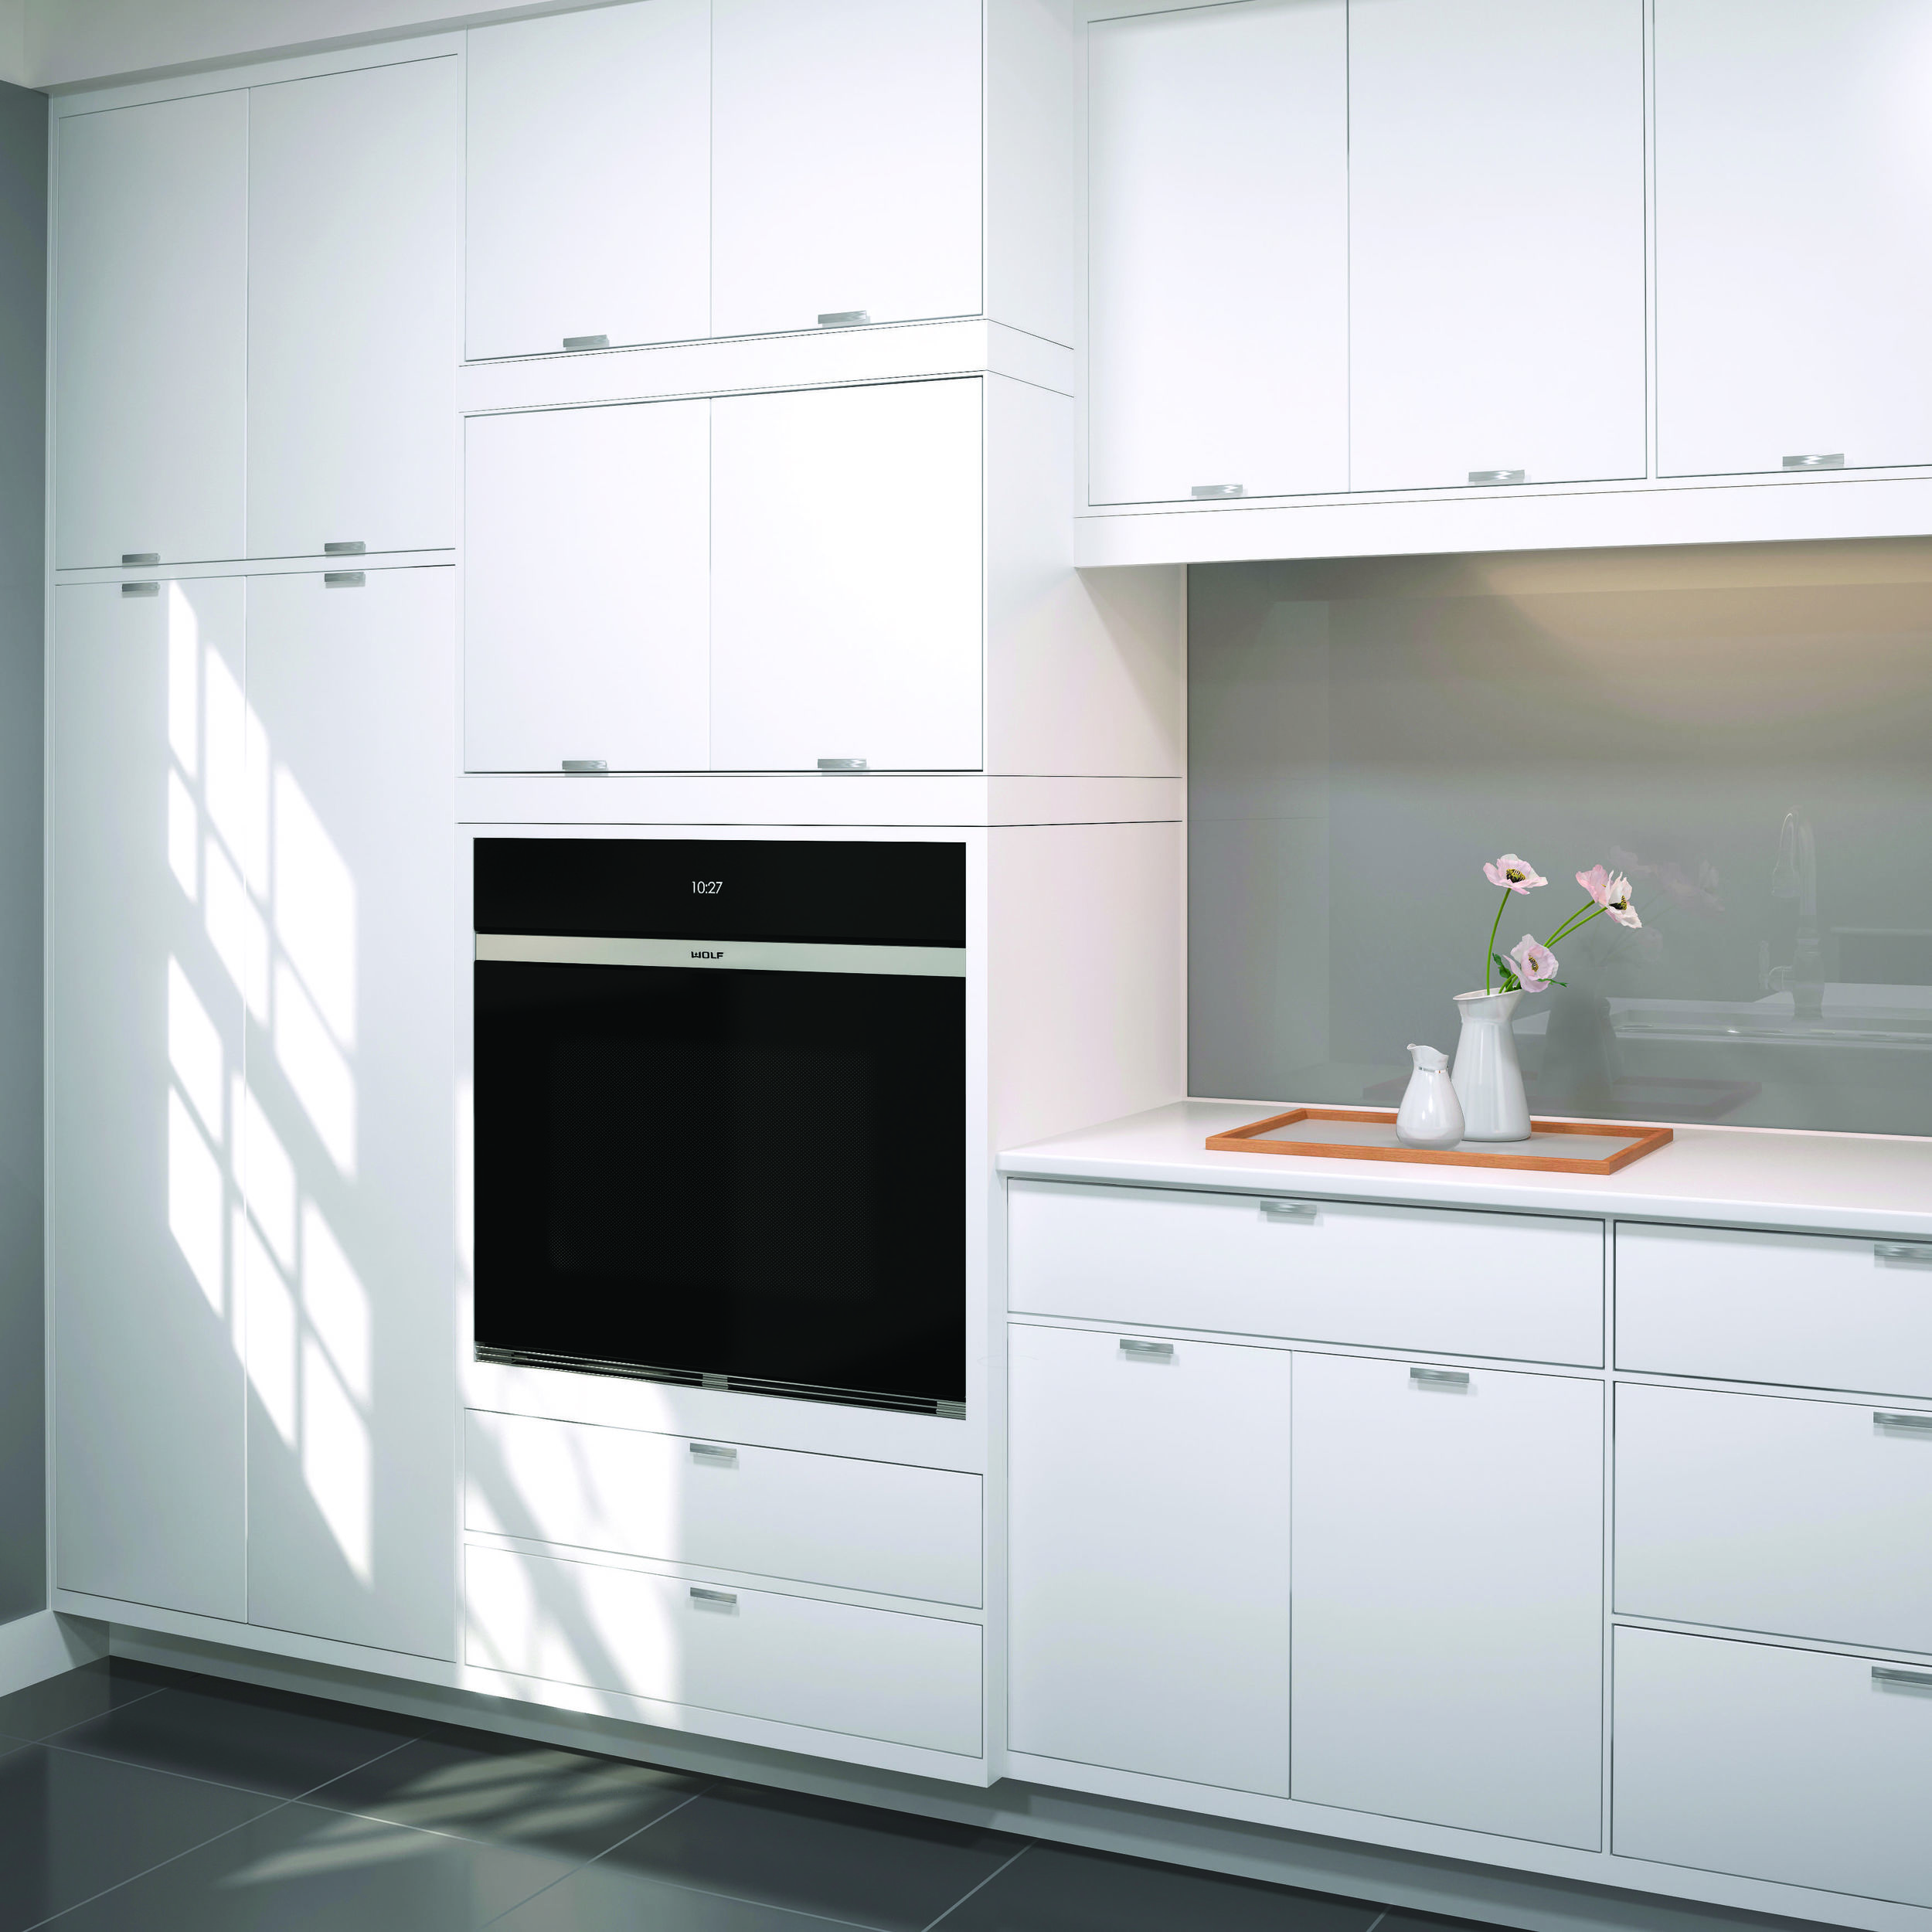 wolf contemporary oven.jpg